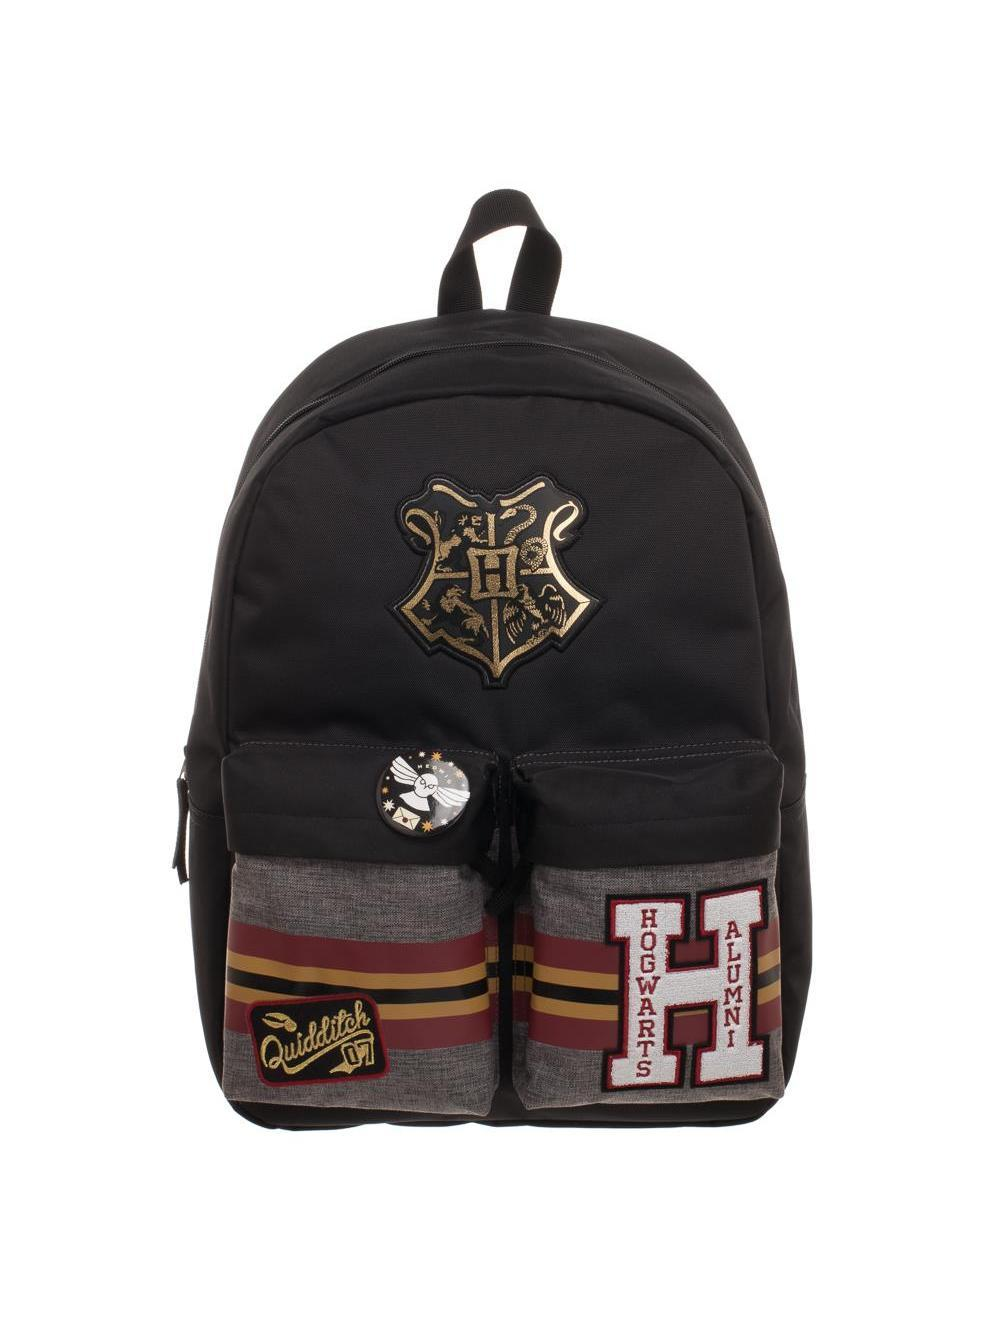 HARRY POTTER - Patches Backpack with Pin Badge